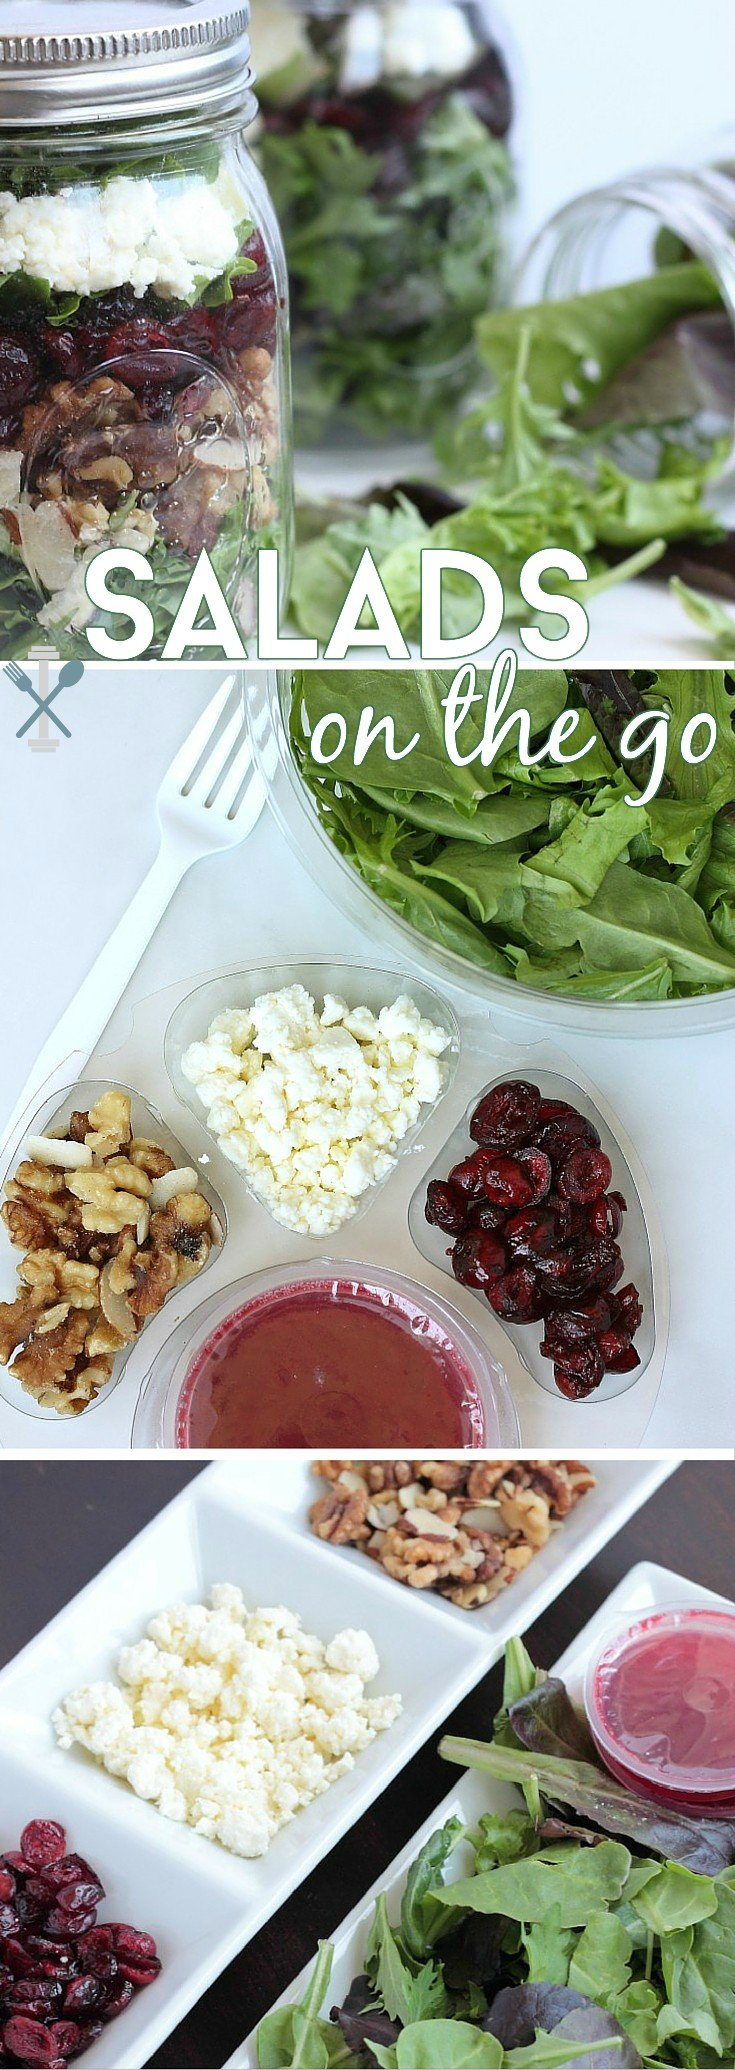 #ad Portable, pre-packaged salads are a great way to eat healthy on the go. Here are some creative ways to take your salads to the next level of convenience!